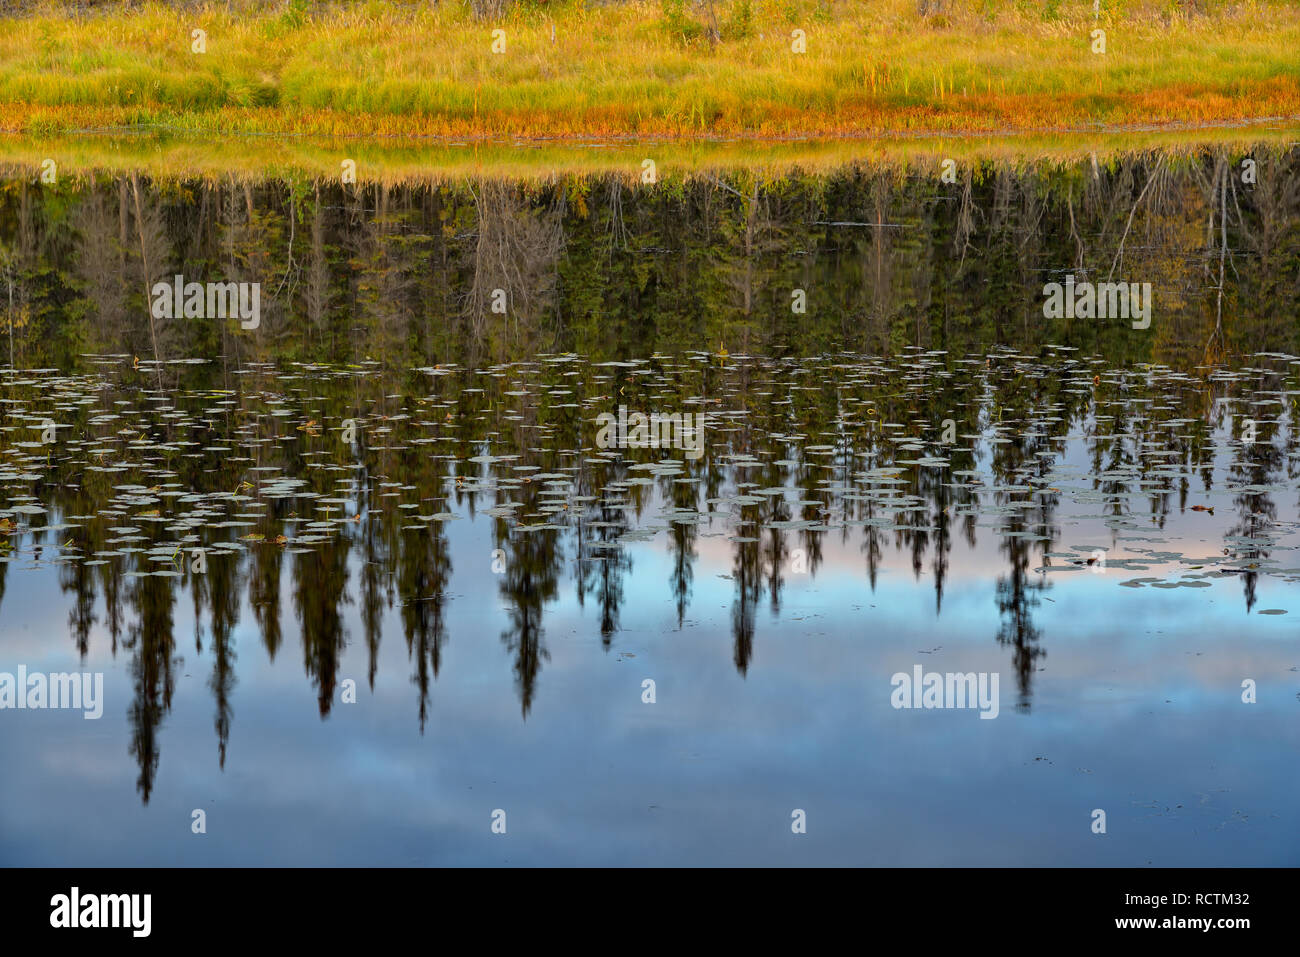 Evening skies and spruces reflected in a beaver pond, Yellowknife, Northwest Territories, Canada - Stock Image